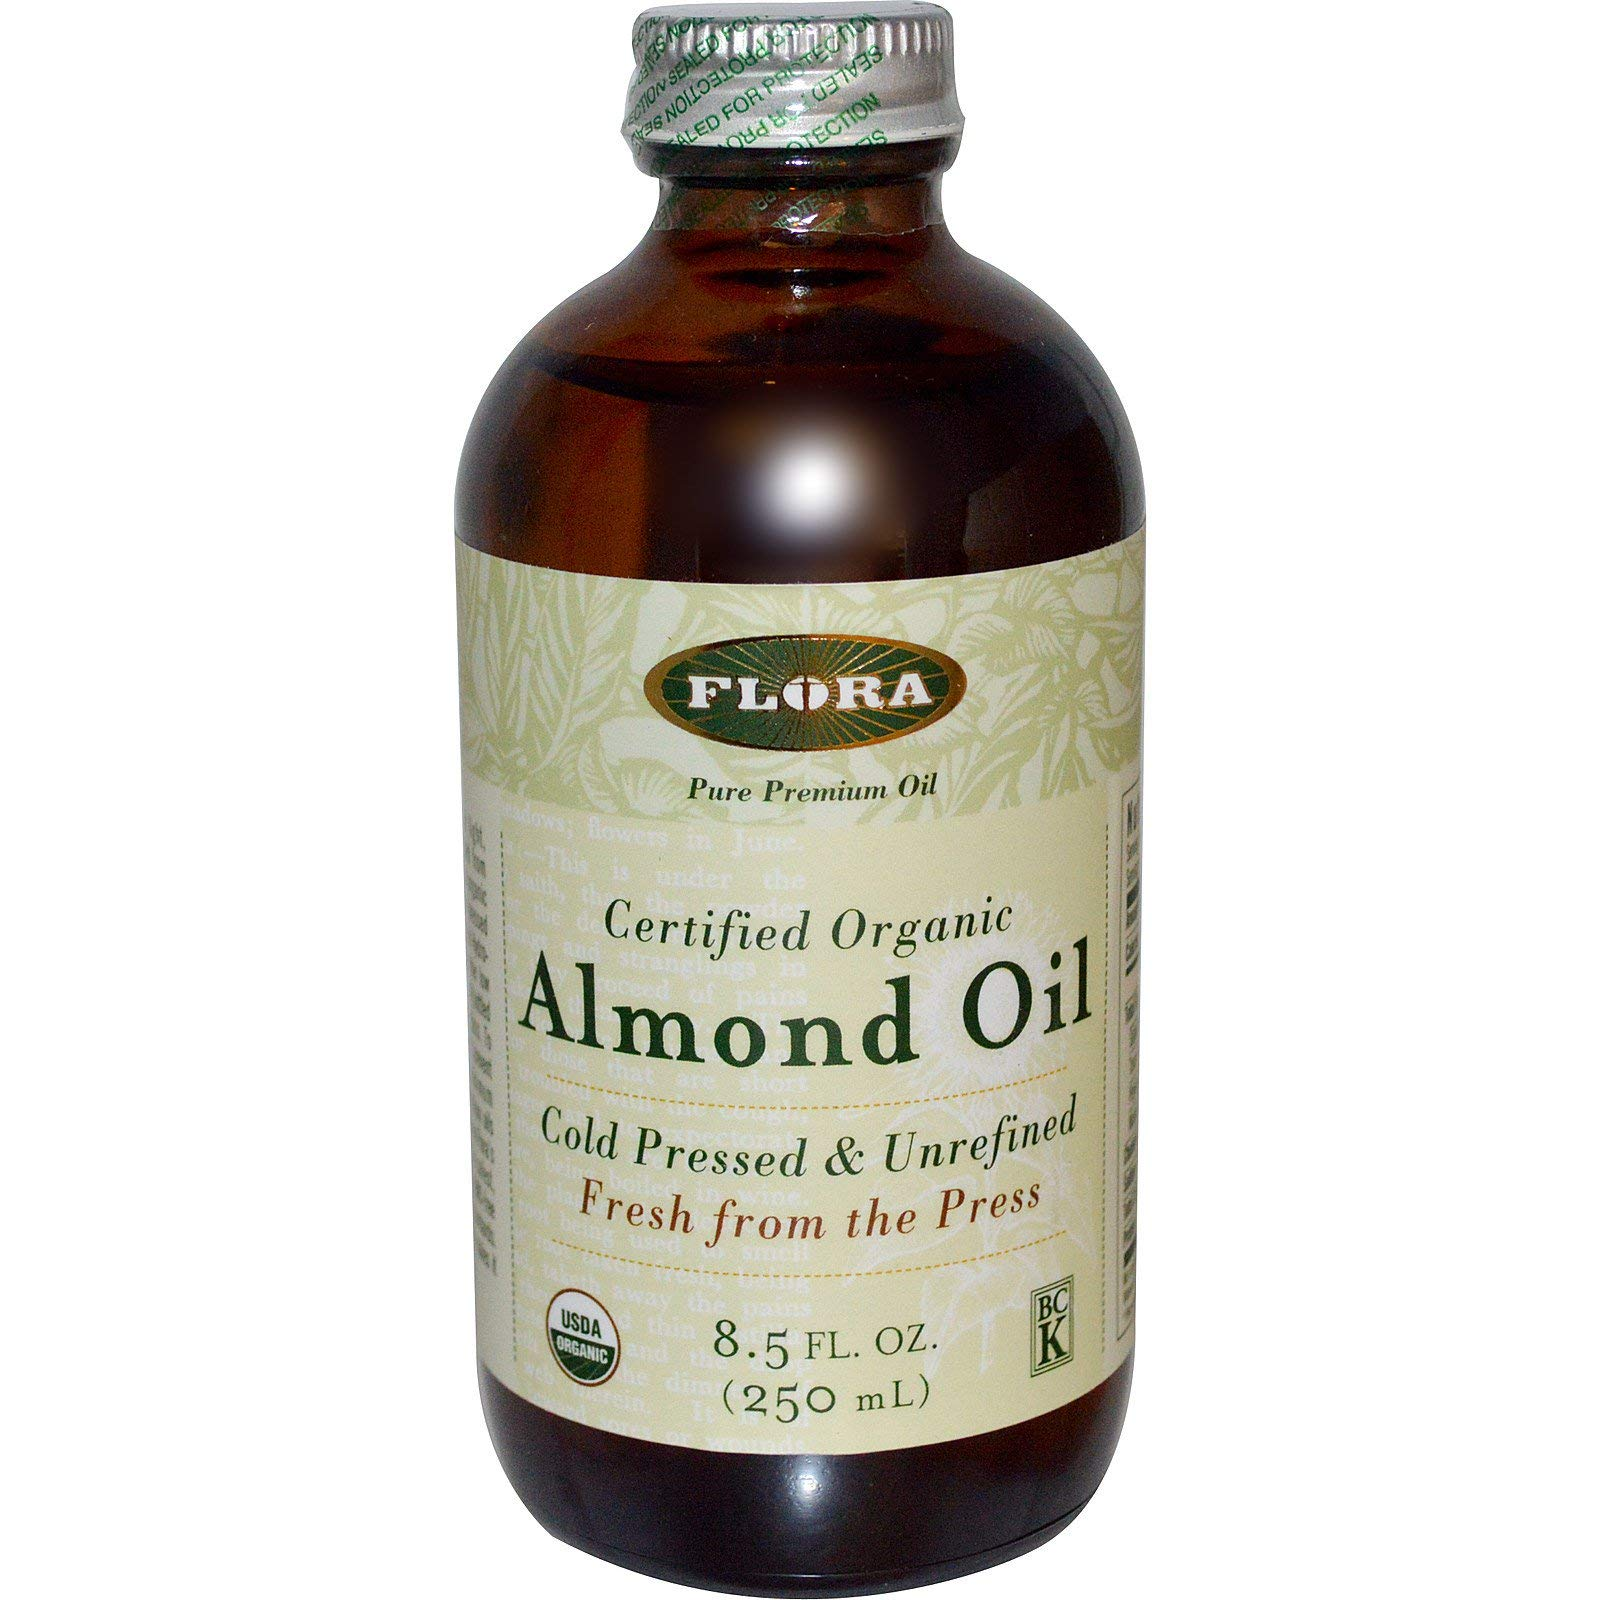 Organic Sweet Almond Oil 8.5 oz - 100% Fresh Pure Oil for Cooking, Hair Care, & Moisturizing Skin - Artisan, Unfiltered, & Unrefined - by Flora